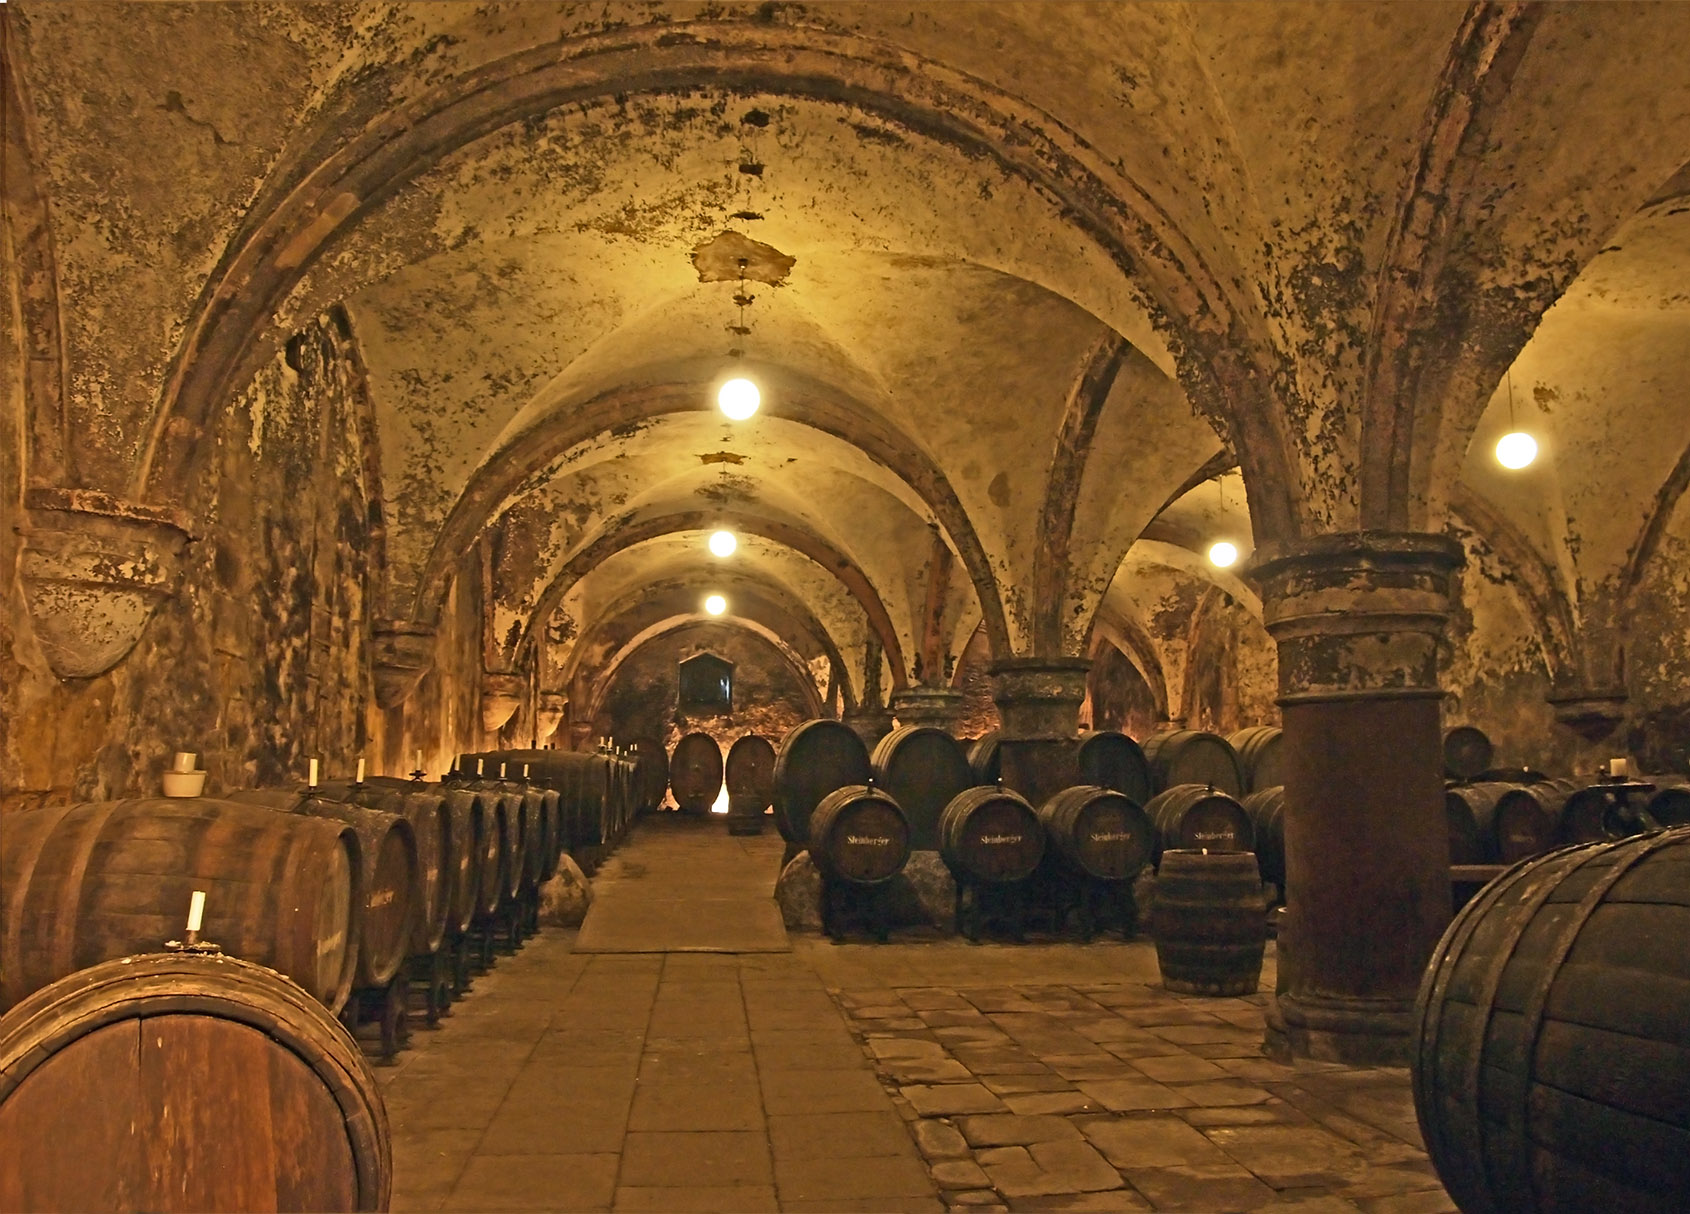 Kloster Eberbach Auction Makes 100k